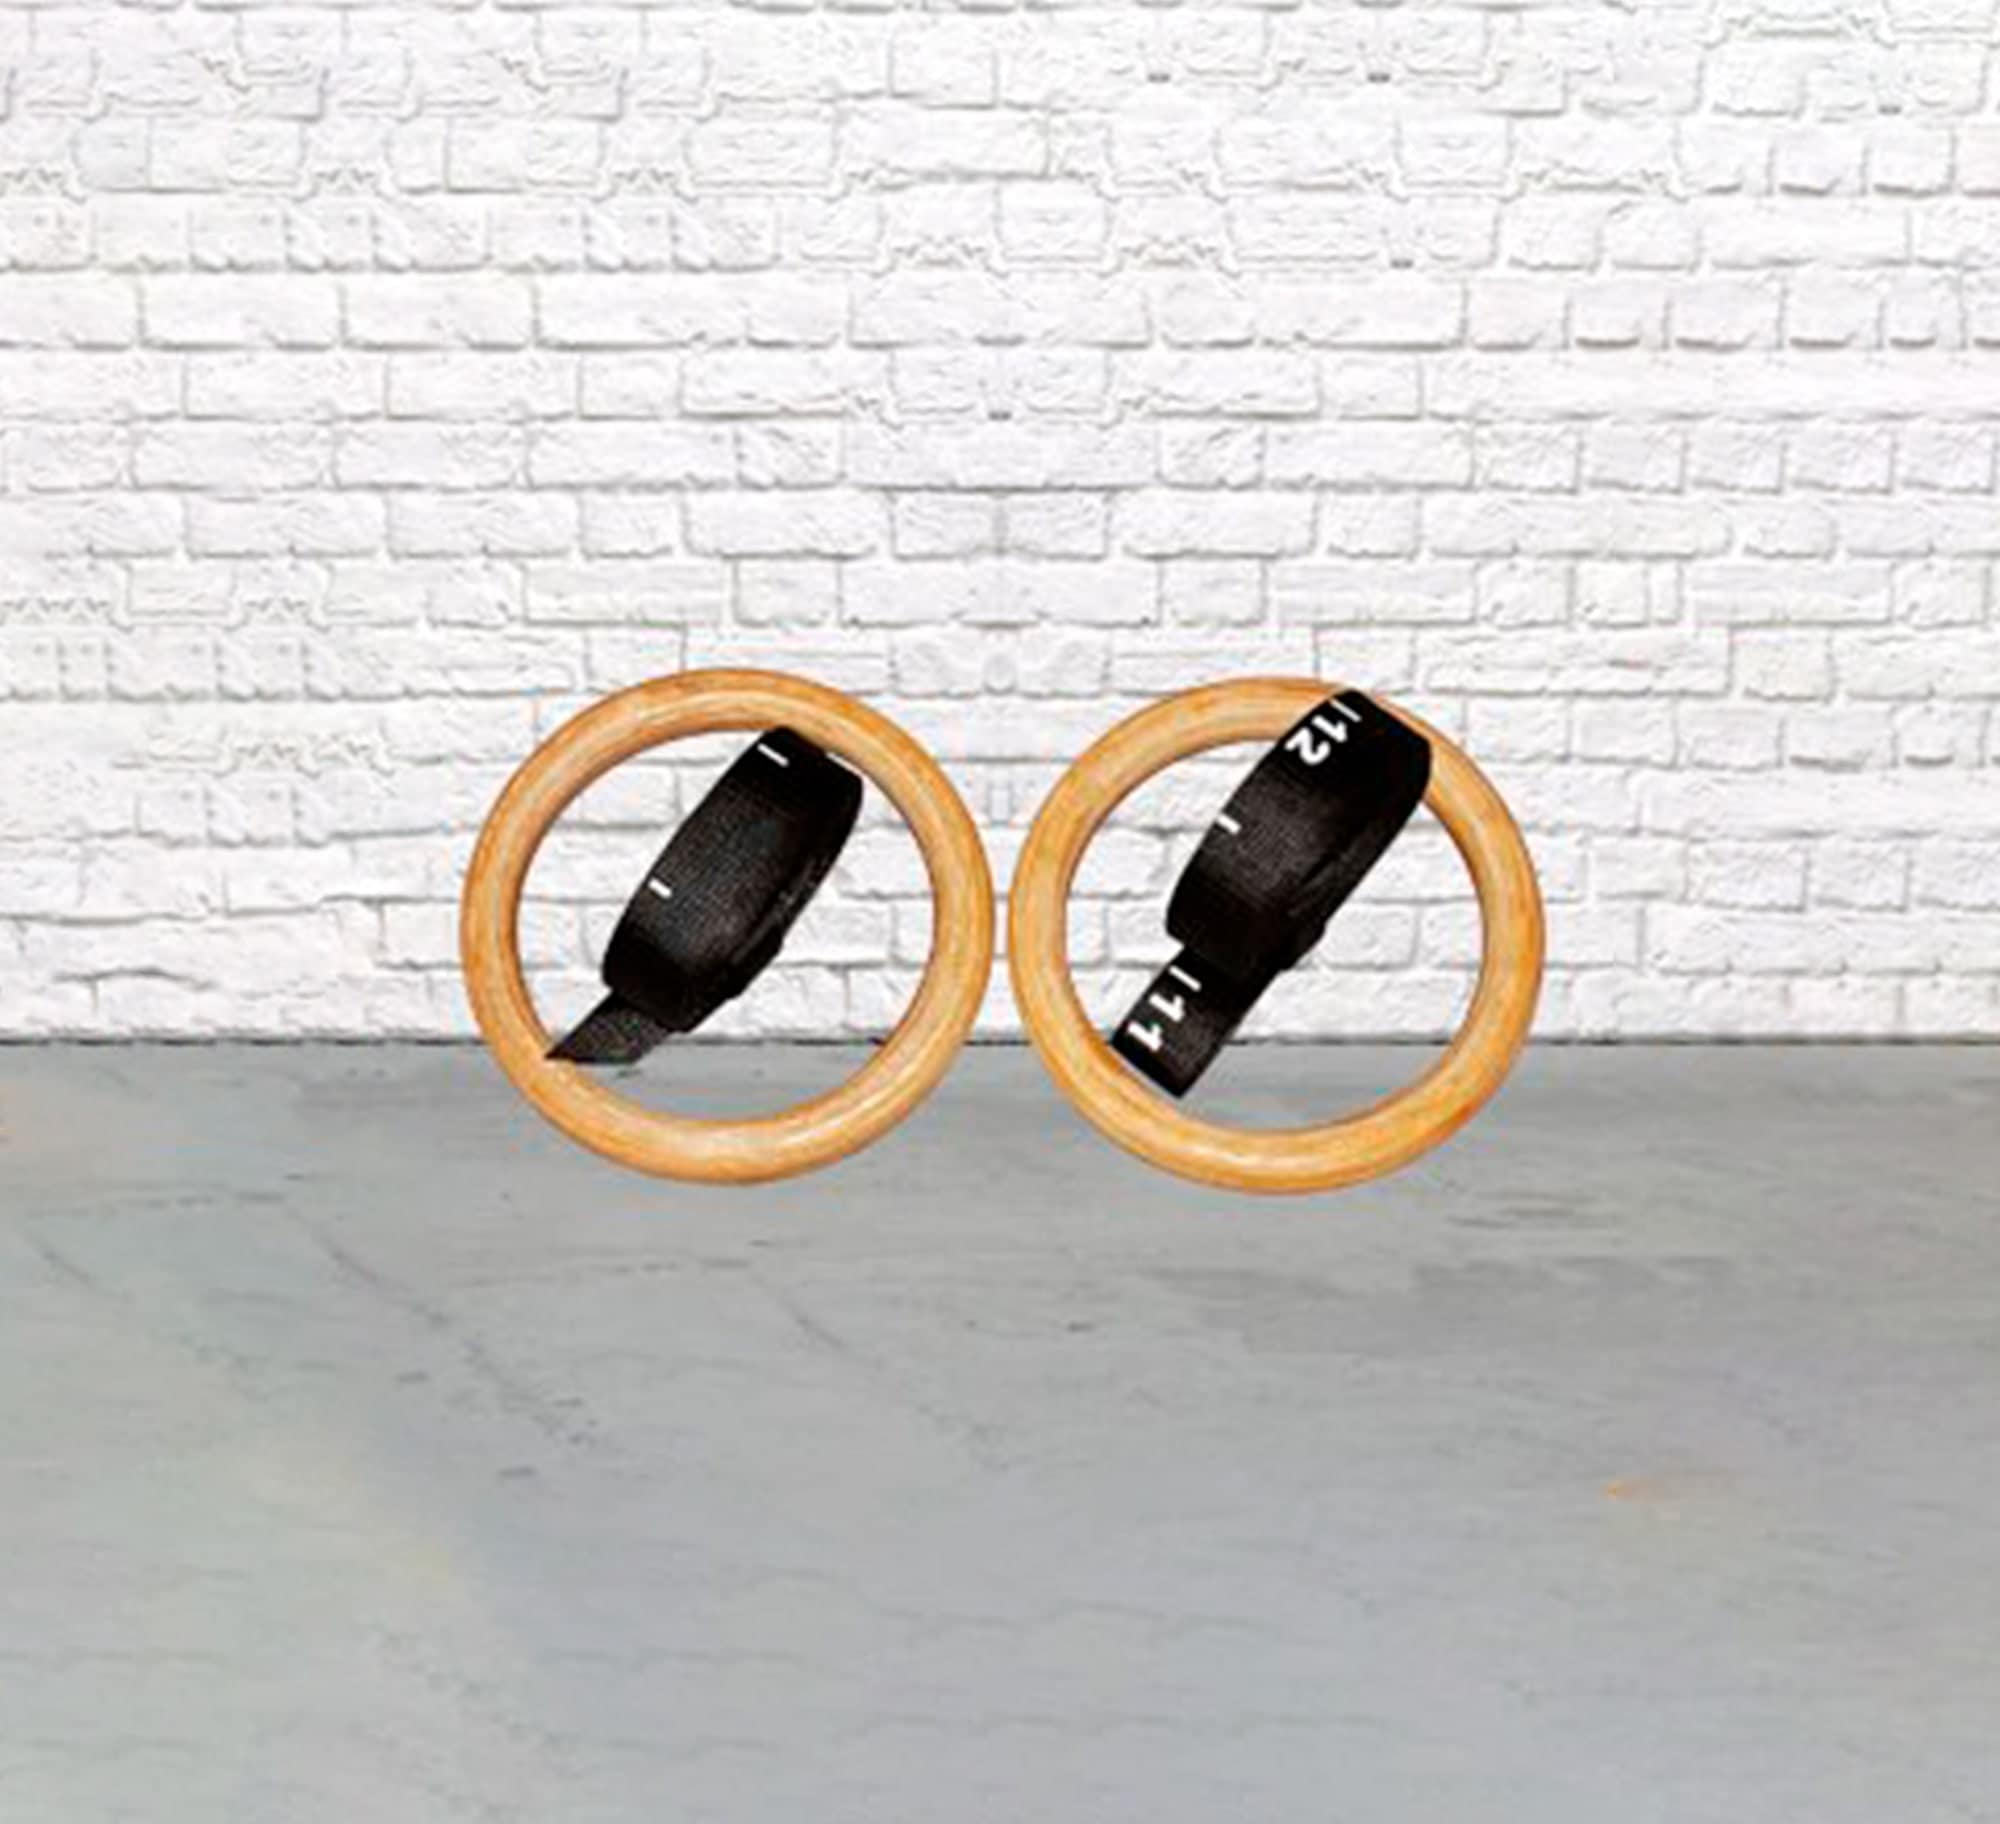 Gymnastic ring wood commercial grade